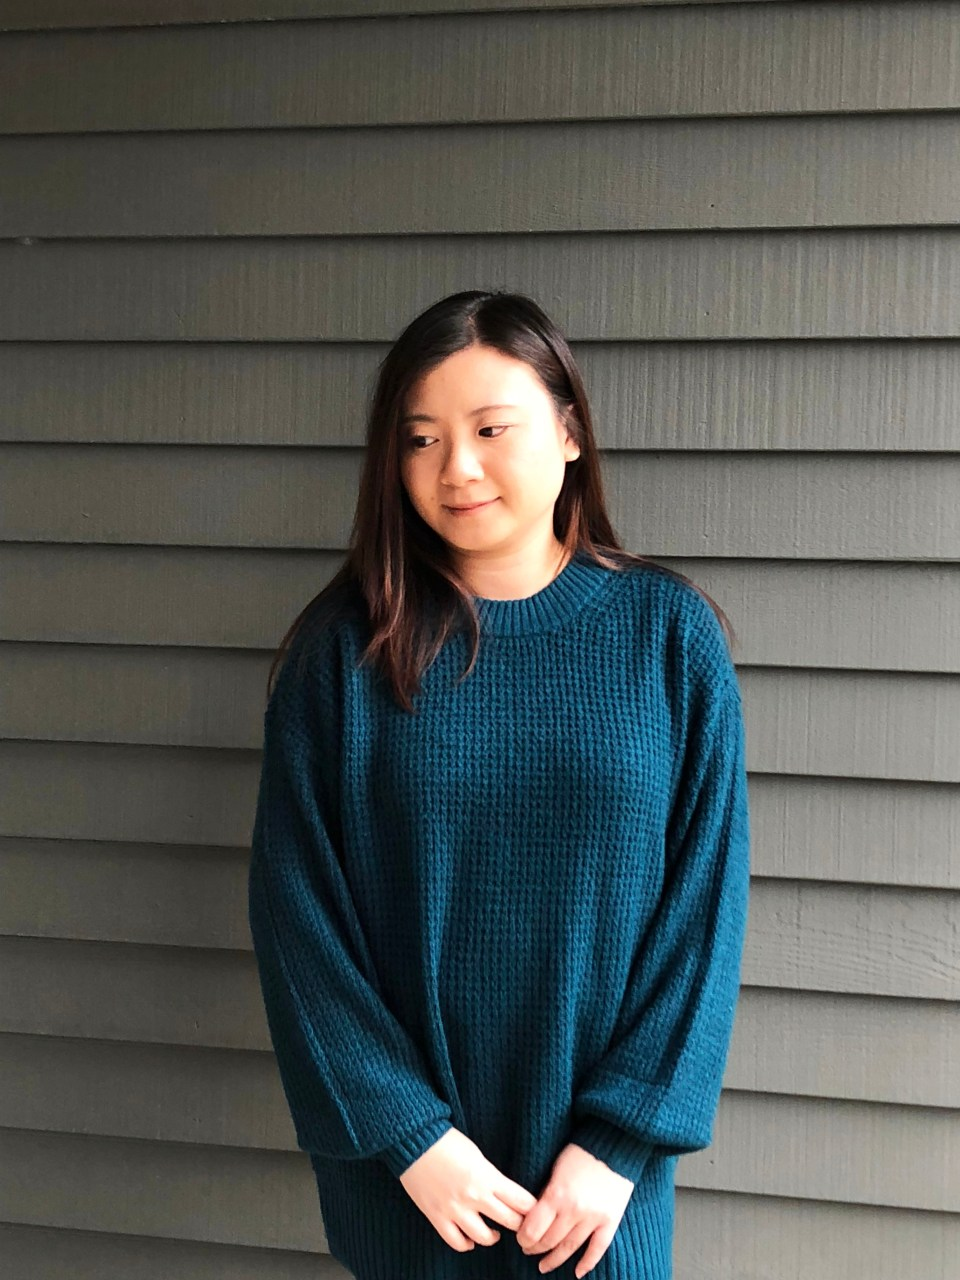 Teal Cloudspun Sweater 6